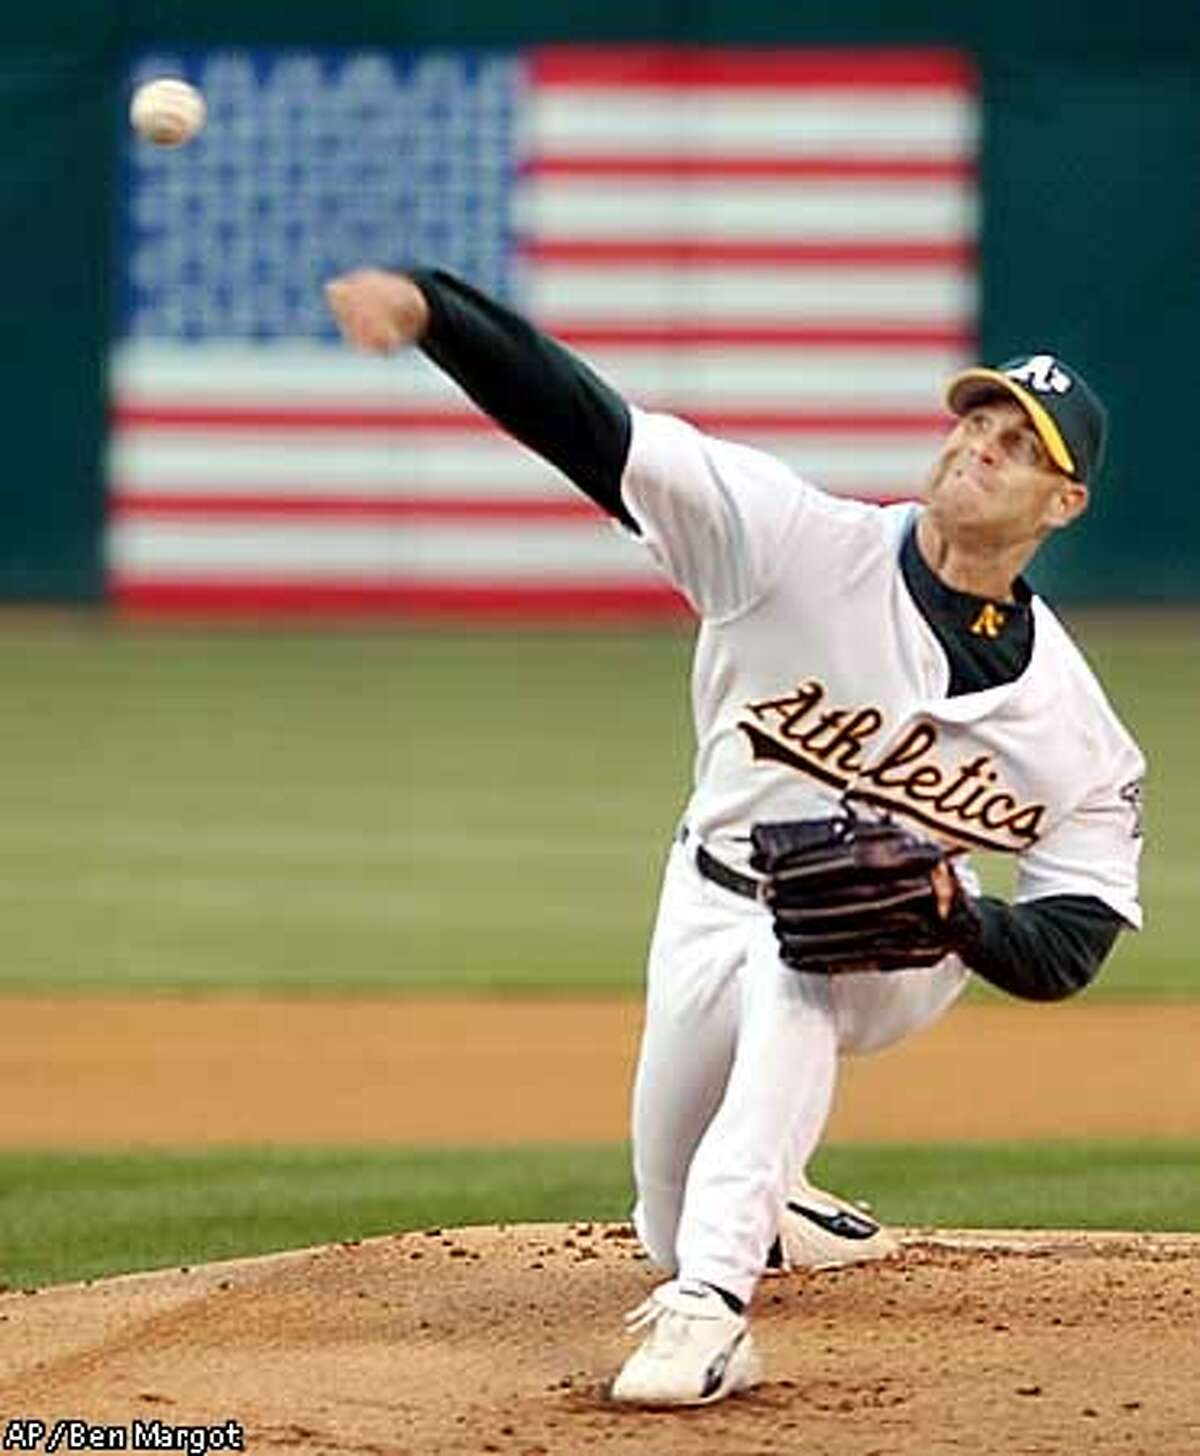 Oakland Athletics' Tim Hudson delivers against the Detroit Tigers in the first inning Tuesday, April 22, 2003, in Oakland, Calif. (AP Photo/Ben Margot)